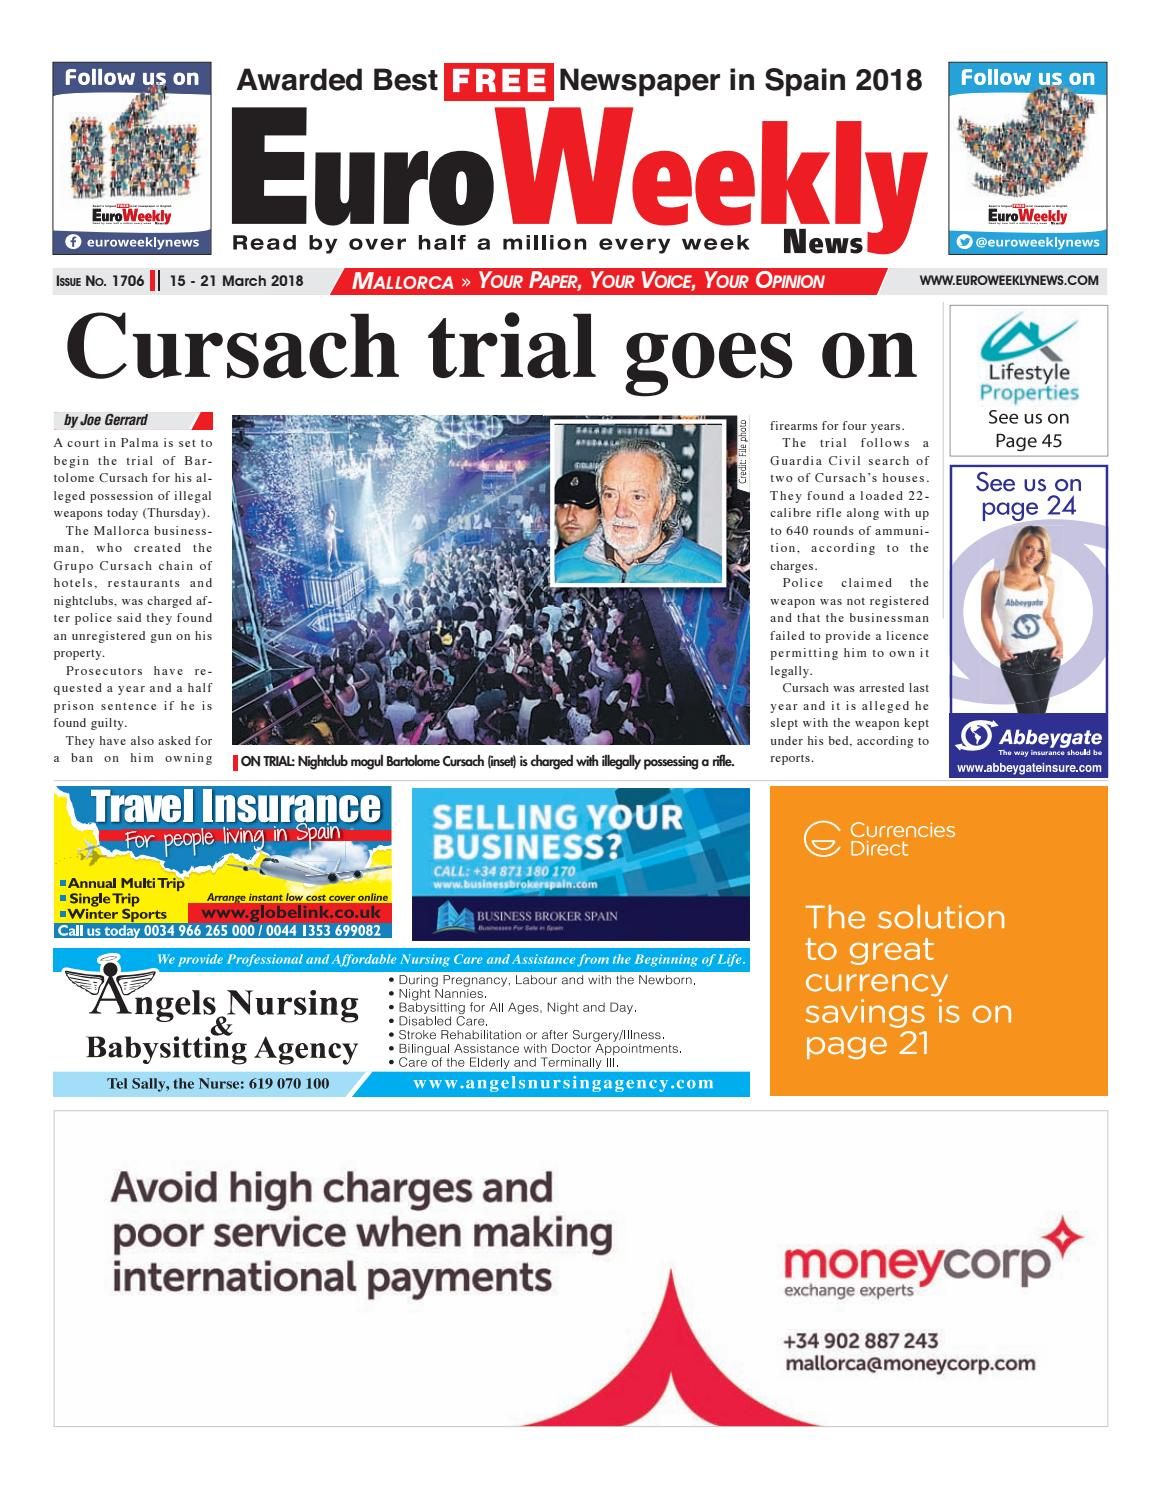 Euro weekly news mallorca 15 21 march 2018 issue 1706 by euro euro weekly news mallorca 15 21 march 2018 issue 1706 by euro weekly news media sa issuu fandeluxe Image collections